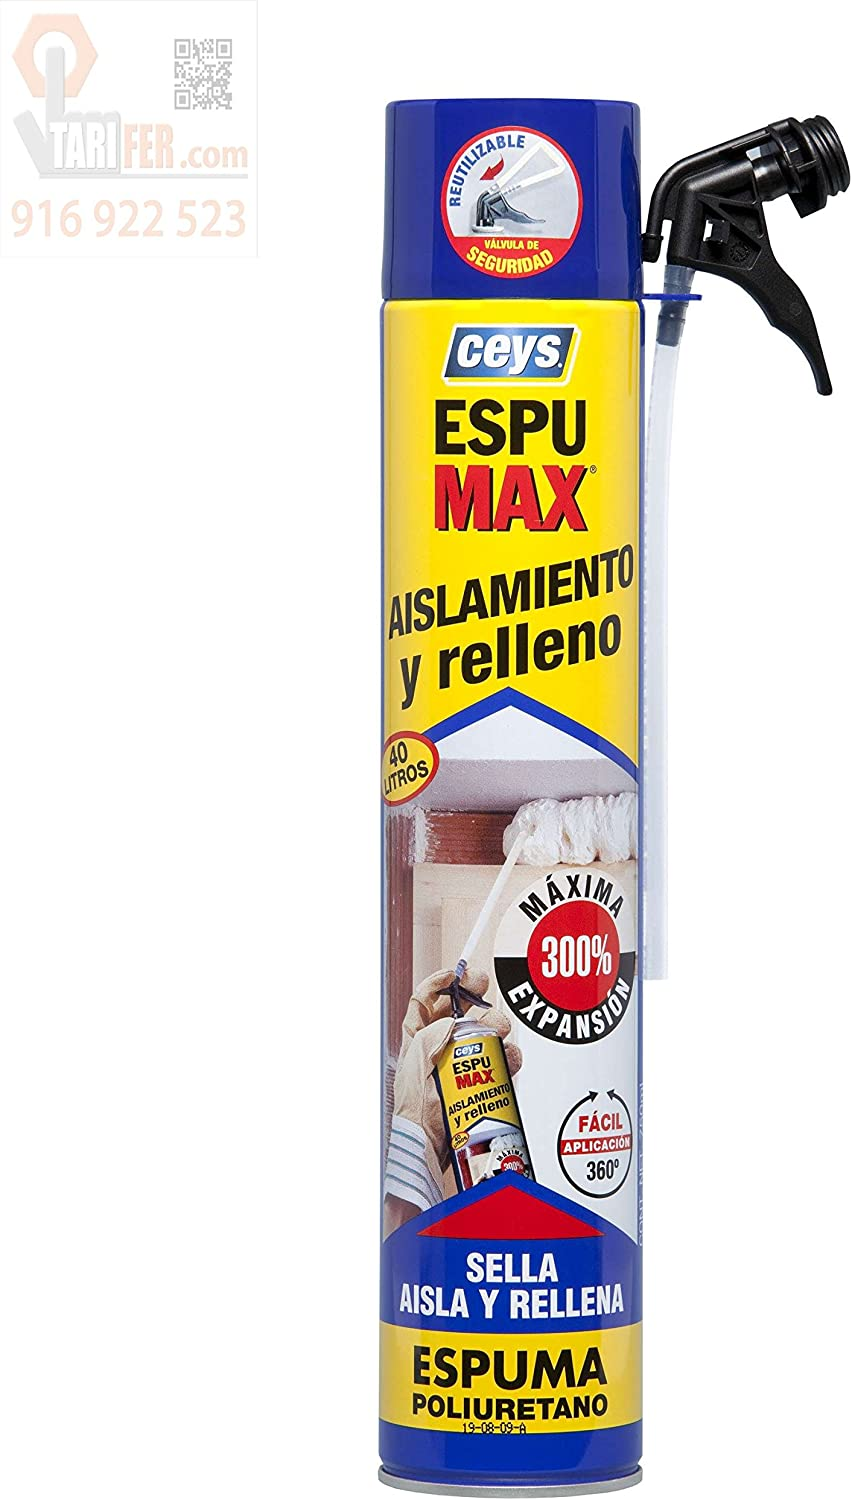 Ceys M96924 - Espuma de poliuretano spumax spray 750 ml: Amazon.es ...